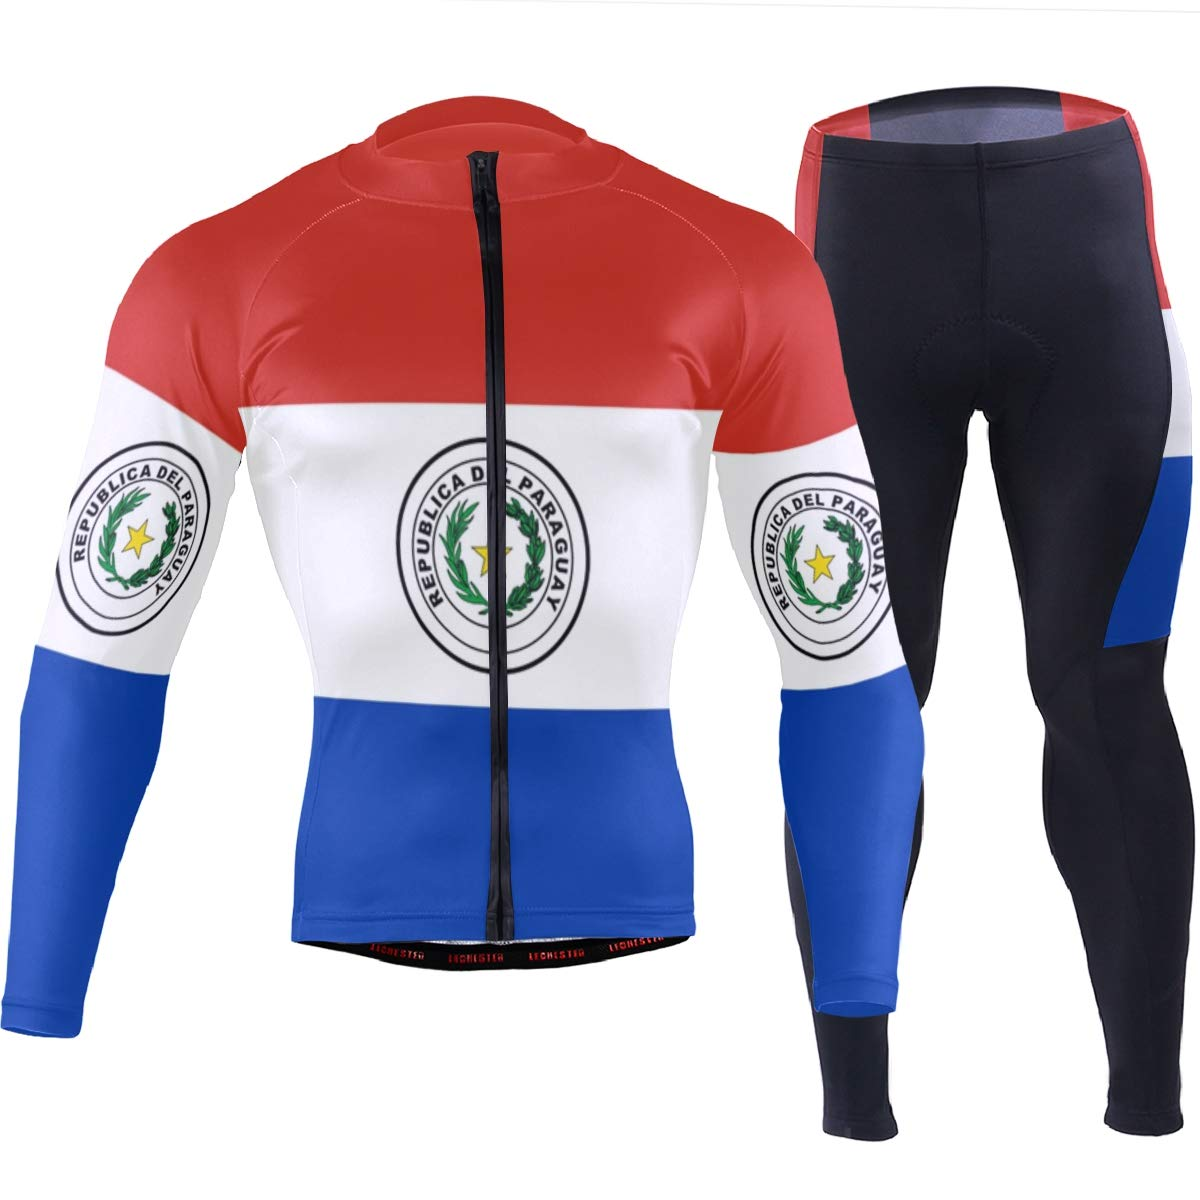 CHINEIN Men's Cycling Jersey Long Sleeve with 3 Rear Pockets Suit Paraguay Flag by CHINEIN